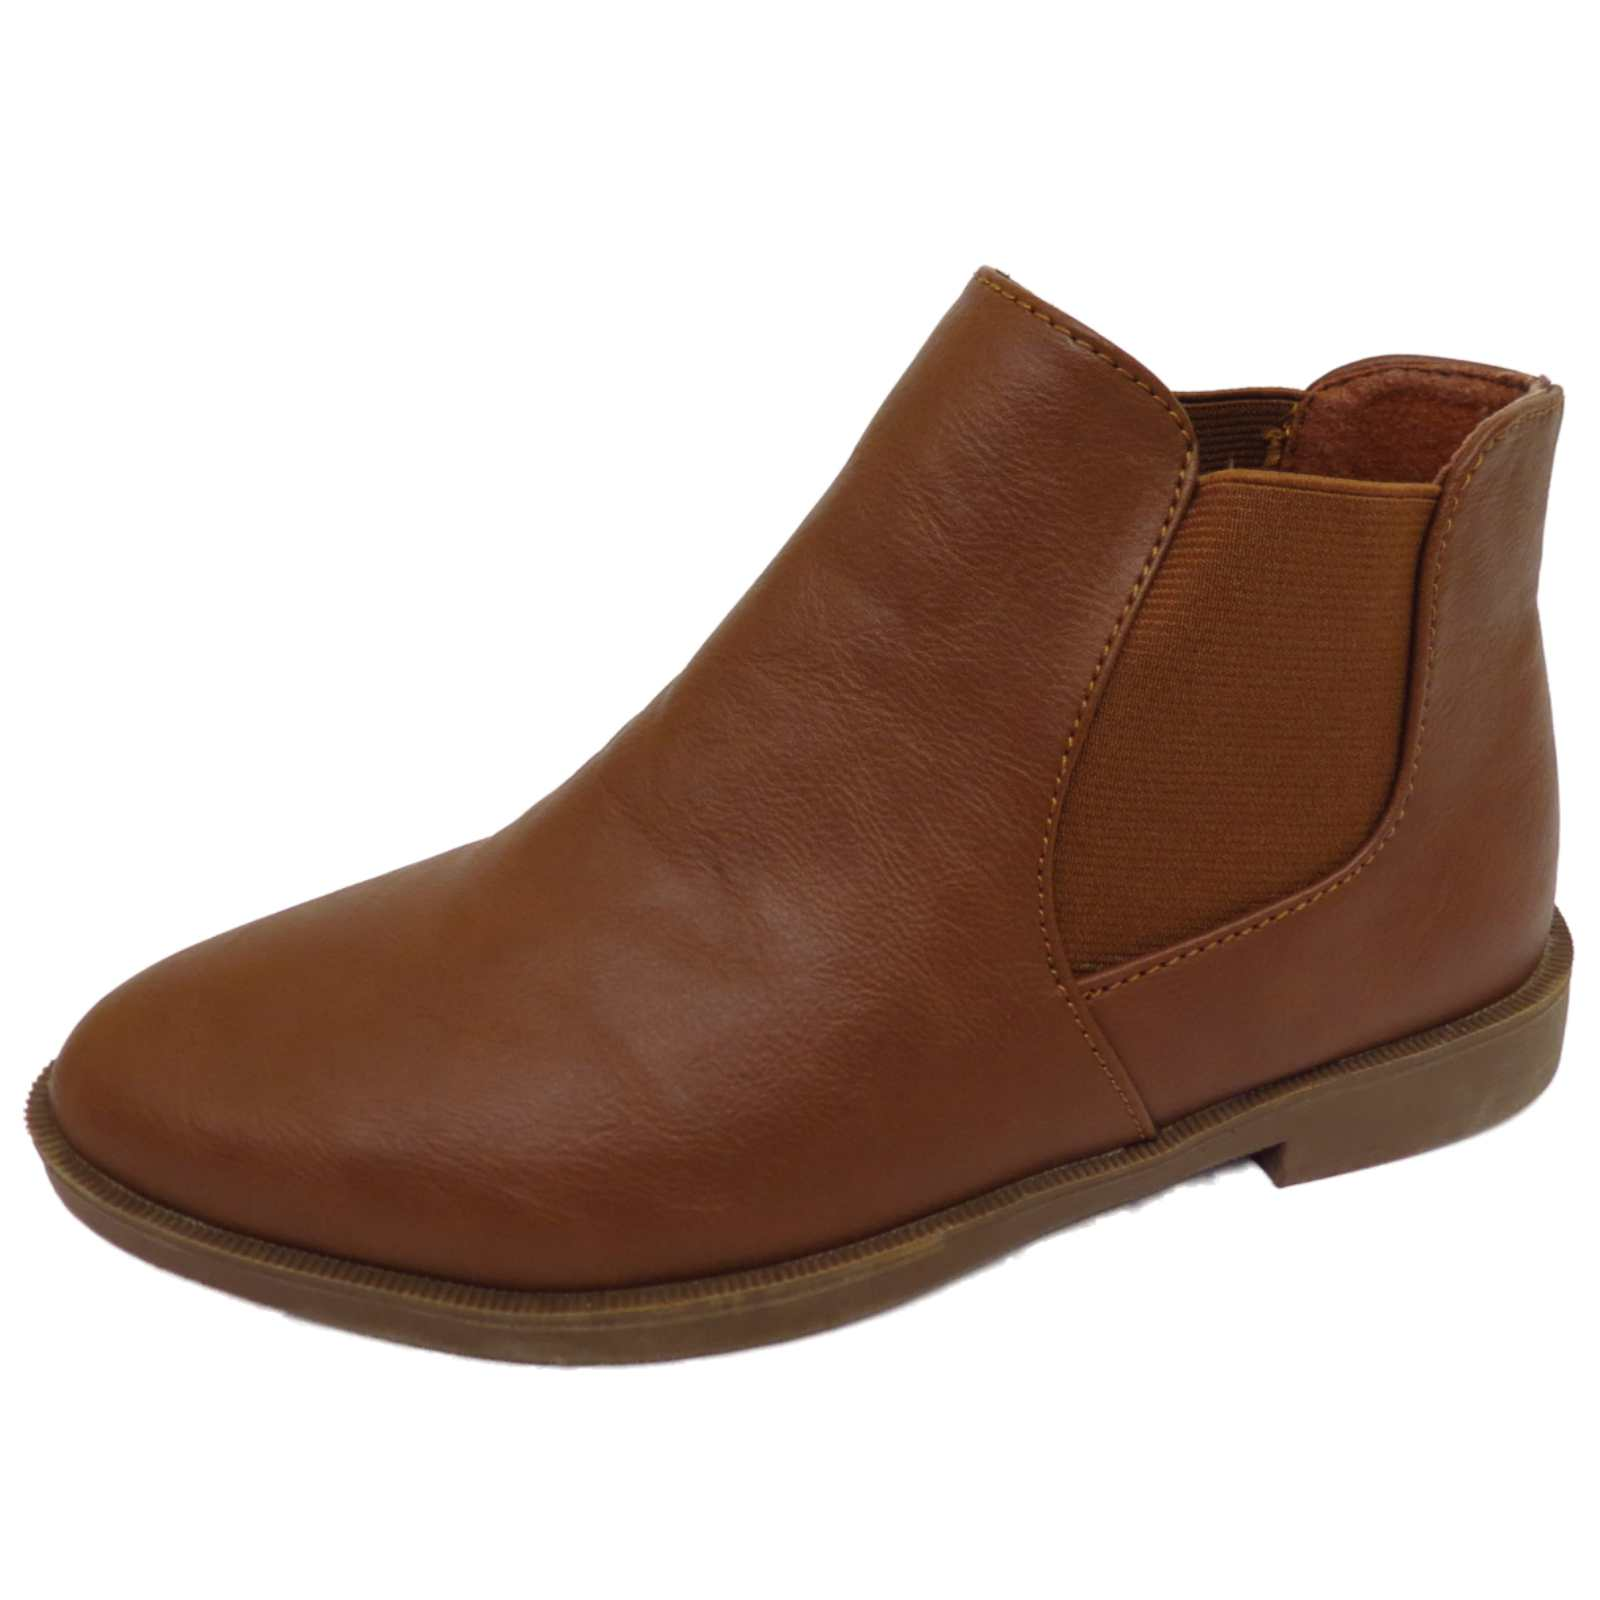 LADIES FLAT TAN PULL-ON BIKER ANKLE CHELSEA DEALER CASUAL BOOTS WORK SHOES 3-8